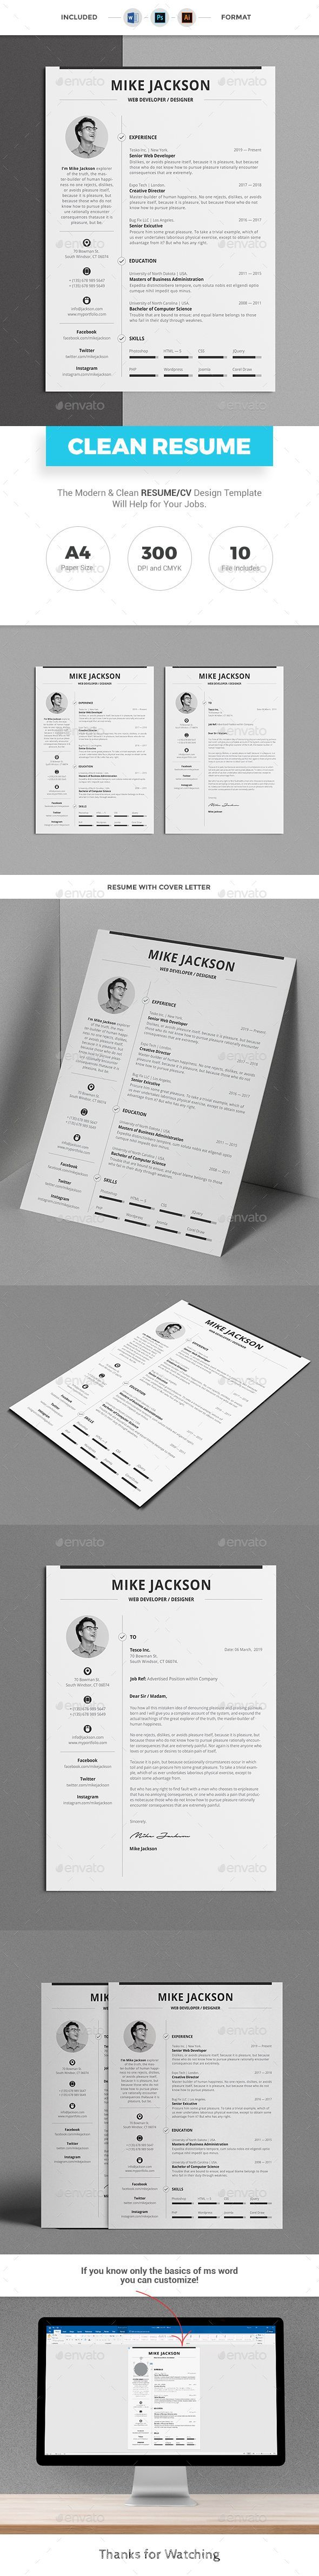 group proposal template%0A photoshop resume templates